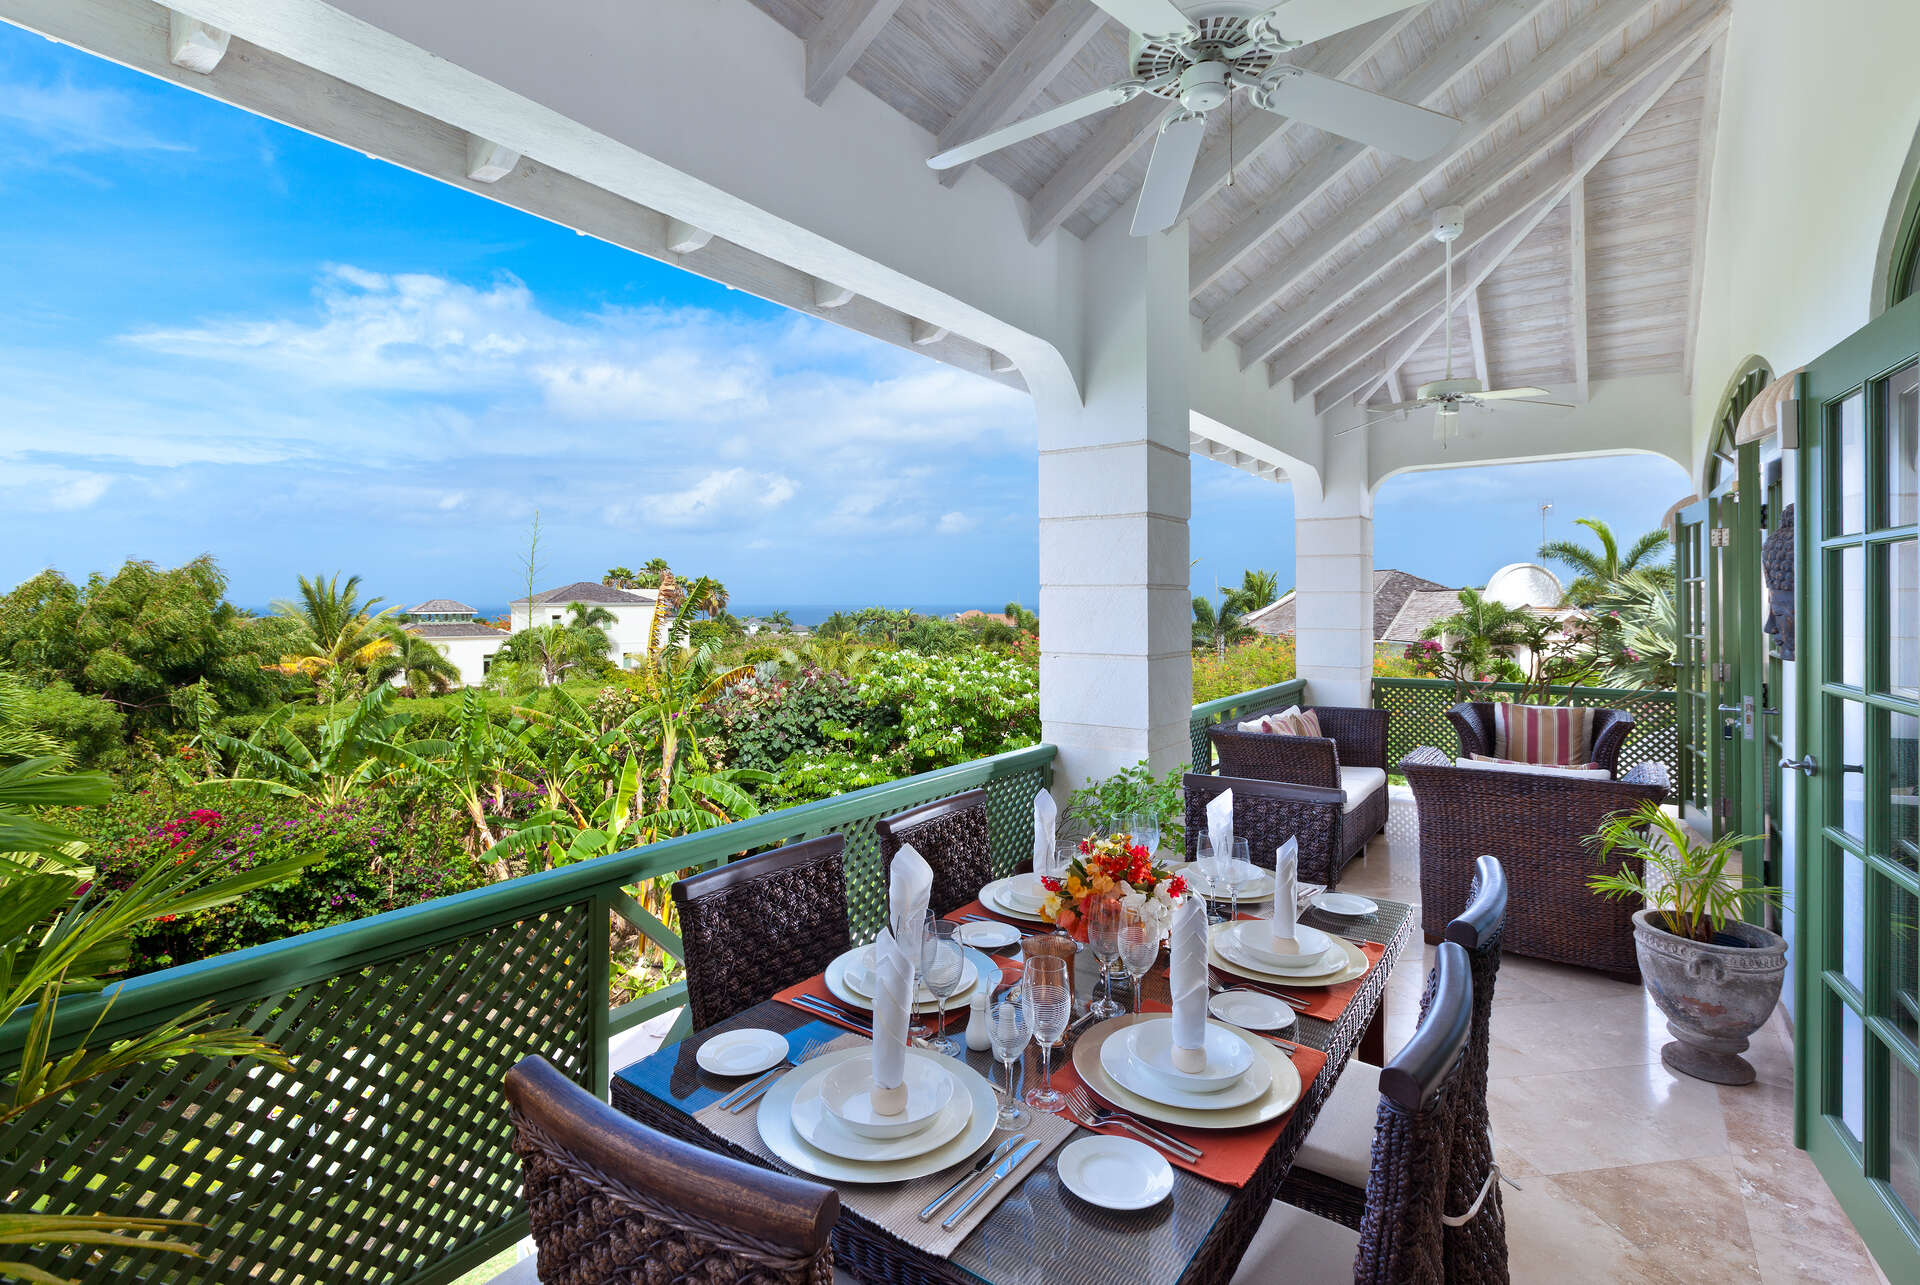 Luxury villa rentals caribbean - Barbados - St james - Sugar hill resort - The Summer House - Image 1/9